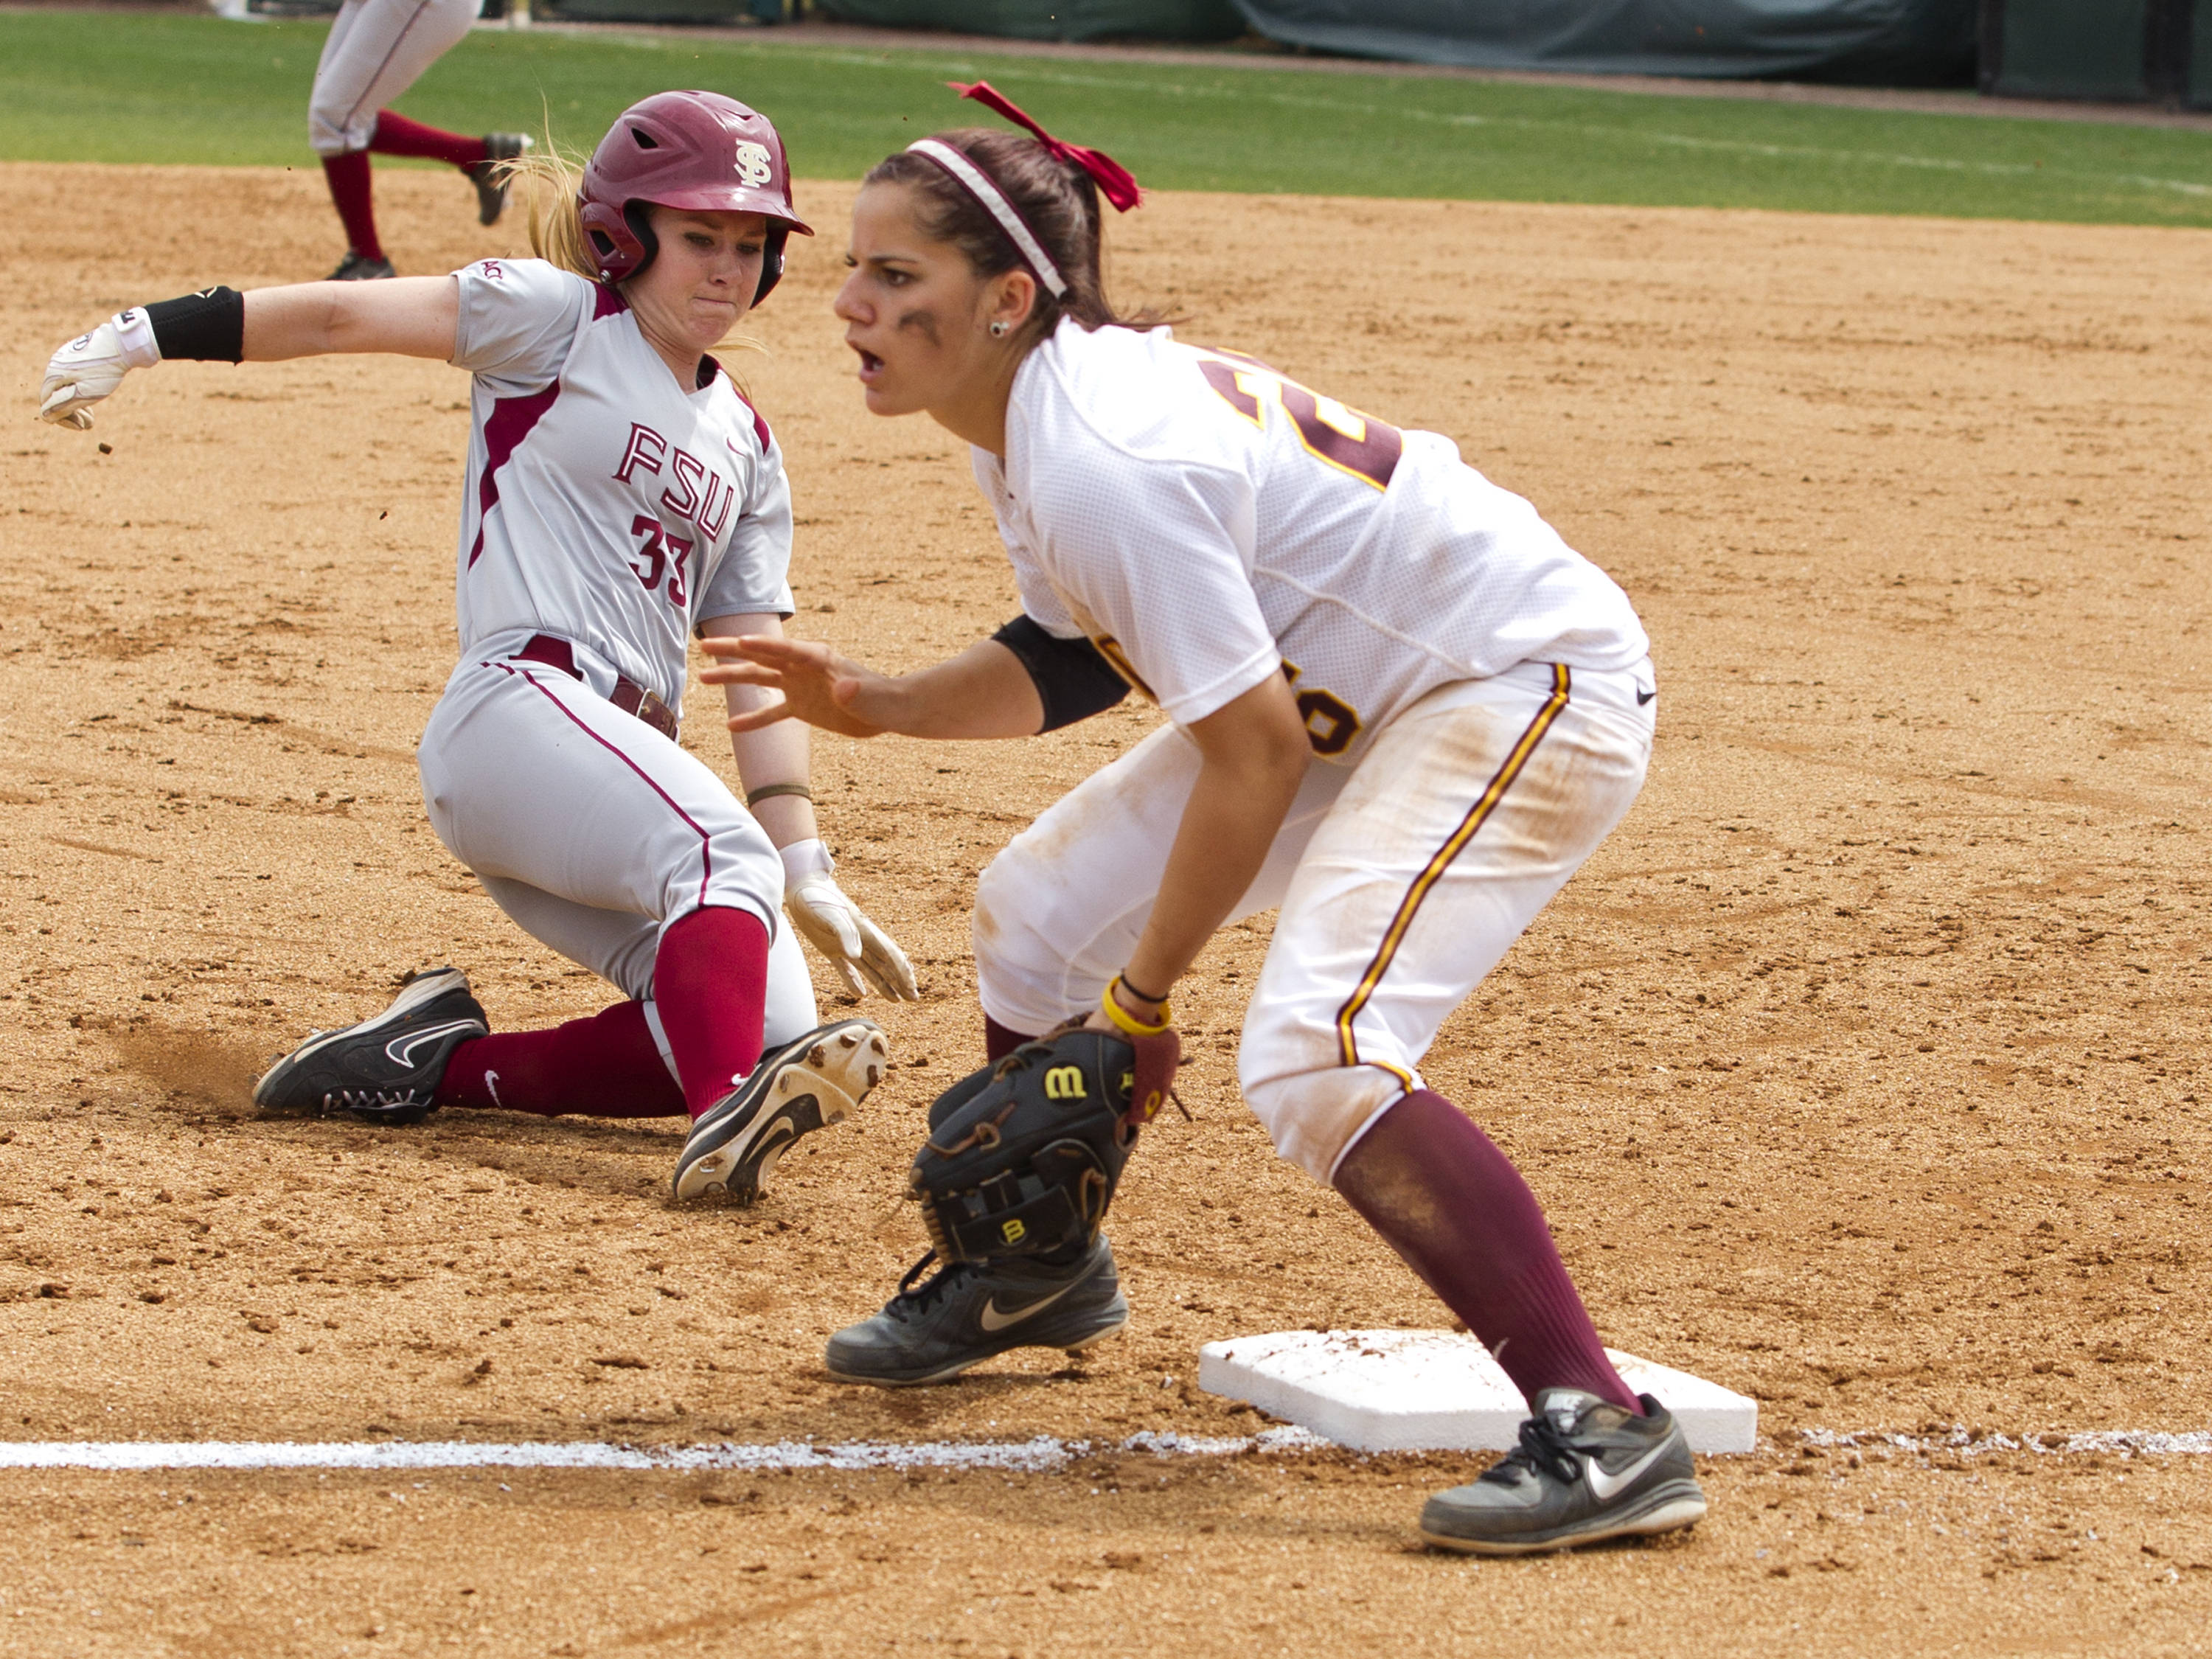 Kirstin Austin (3), FSU vs Minnesota, 03/17/13. (Photo by Steve Musco)